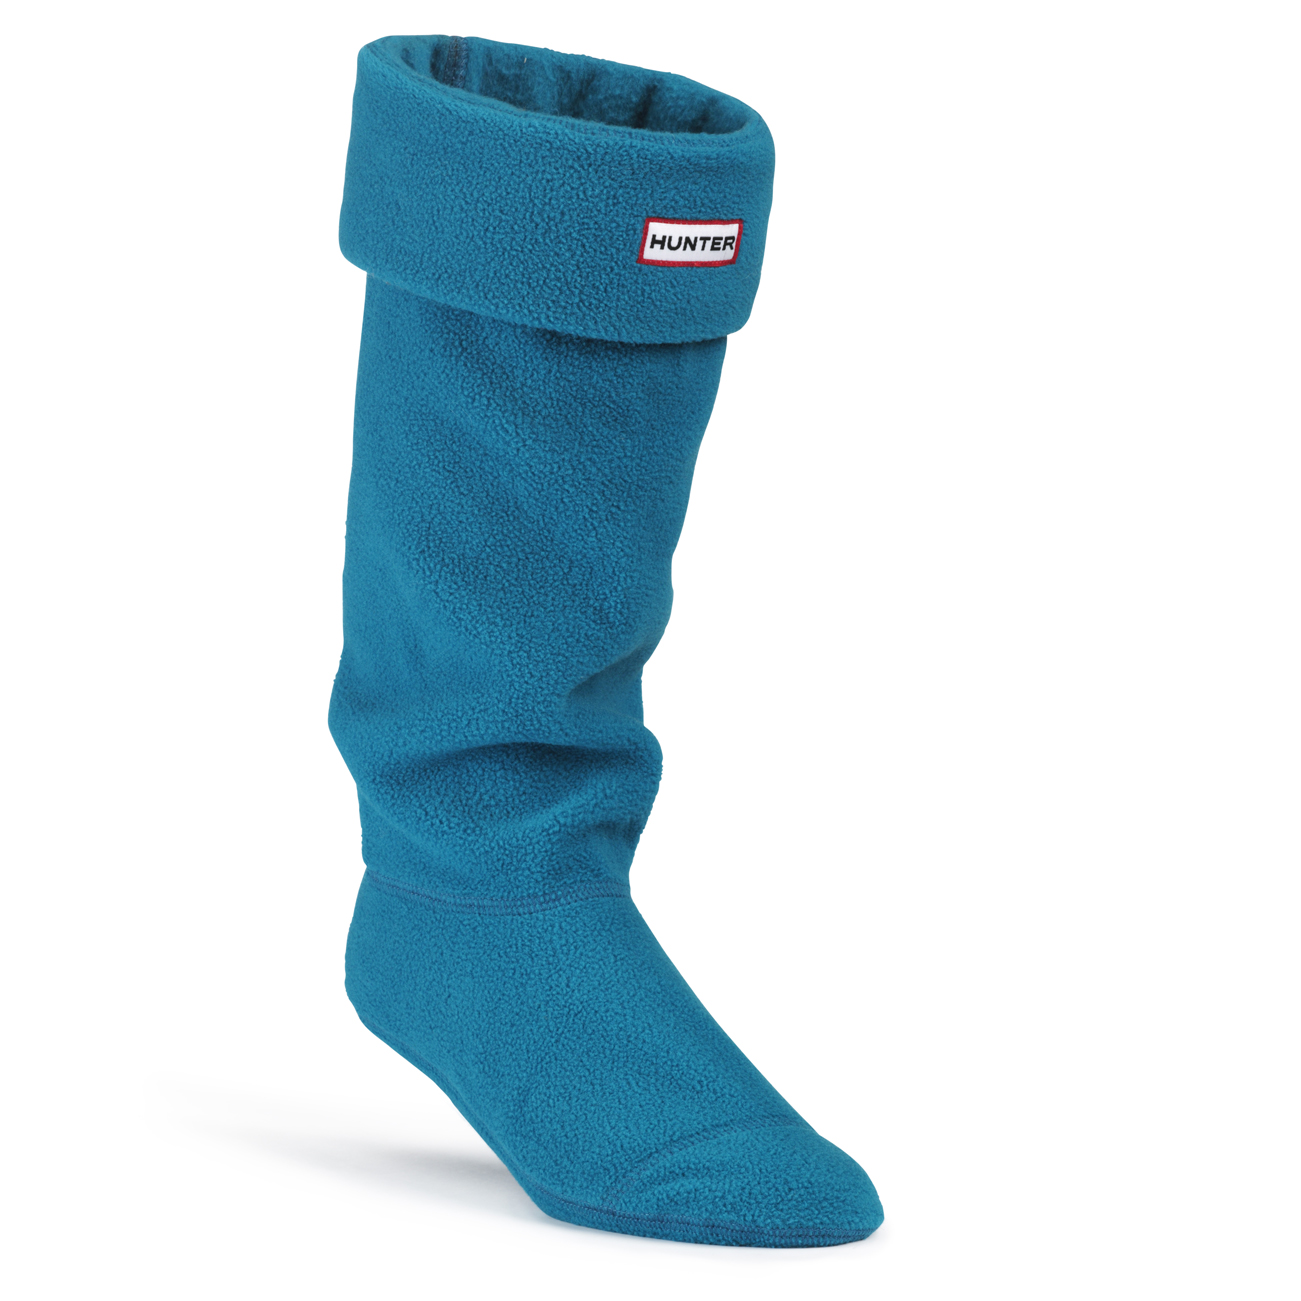 Cheap Fast Delivery Hunter Unisex Boot Socks Green Clearance Online Cheap Real Outlet Huge Surprise Cheap Authentic qQHvLq